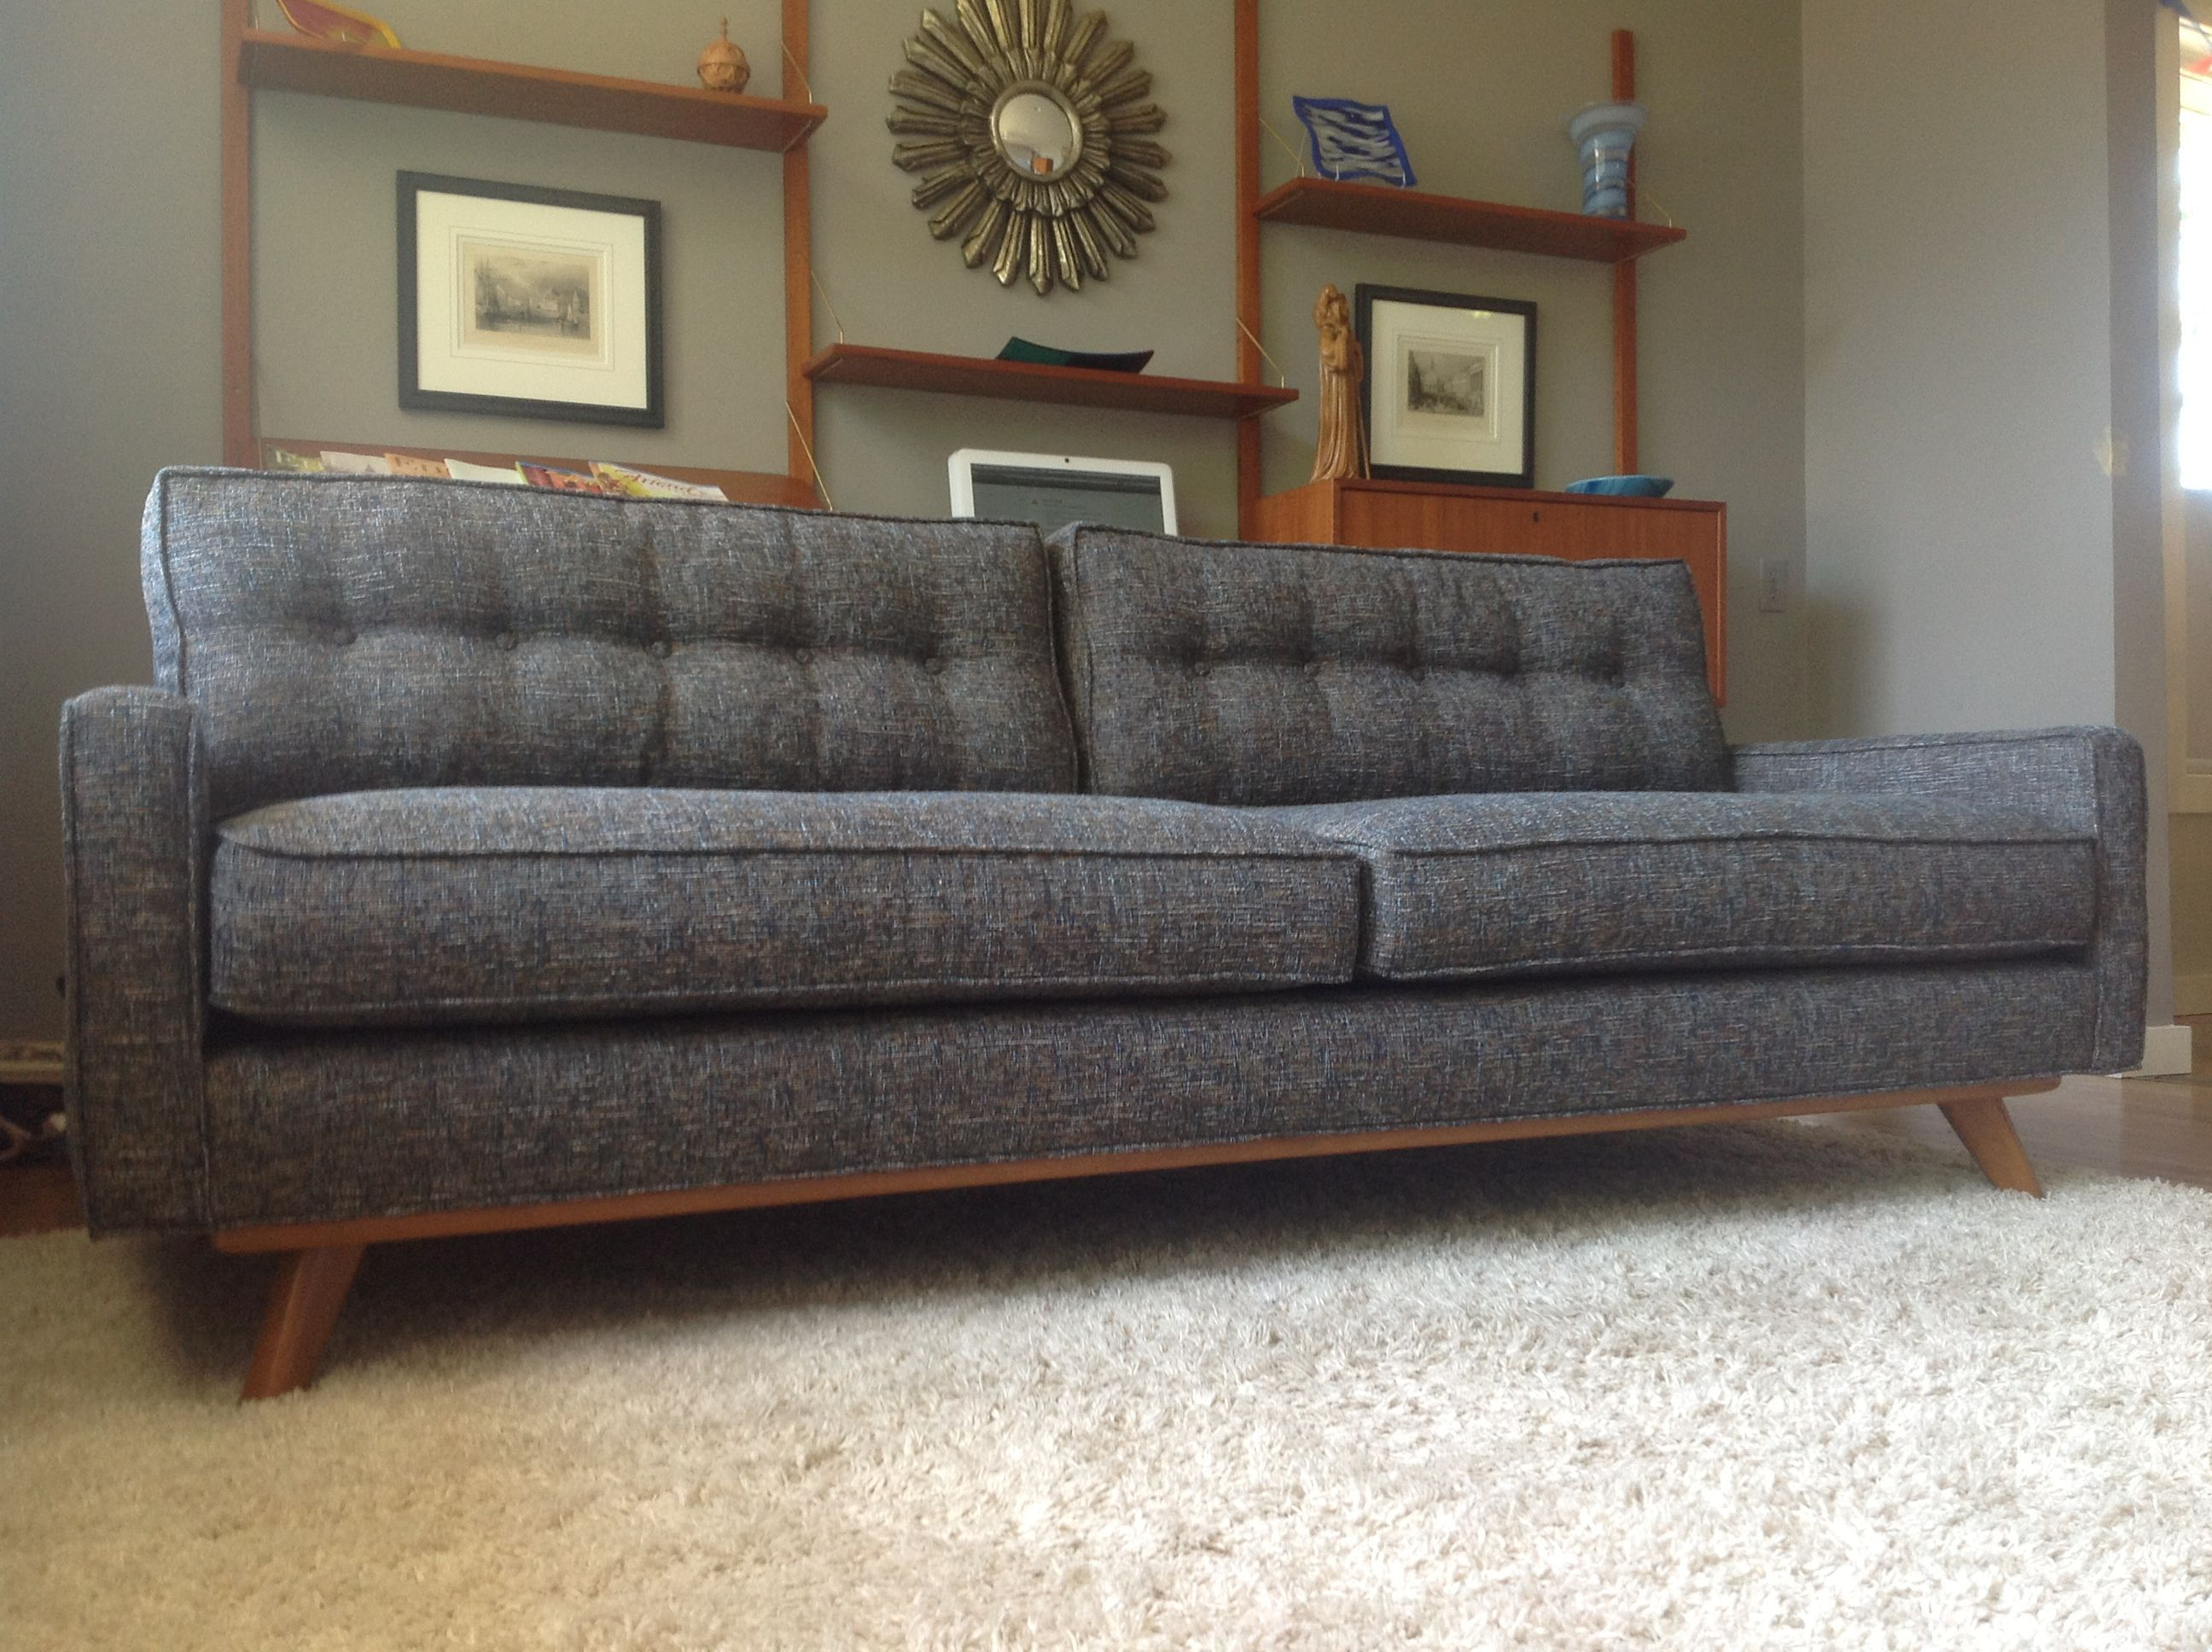 Taylor Sofa in Cordova Eclipse fabric from thrivefurniture